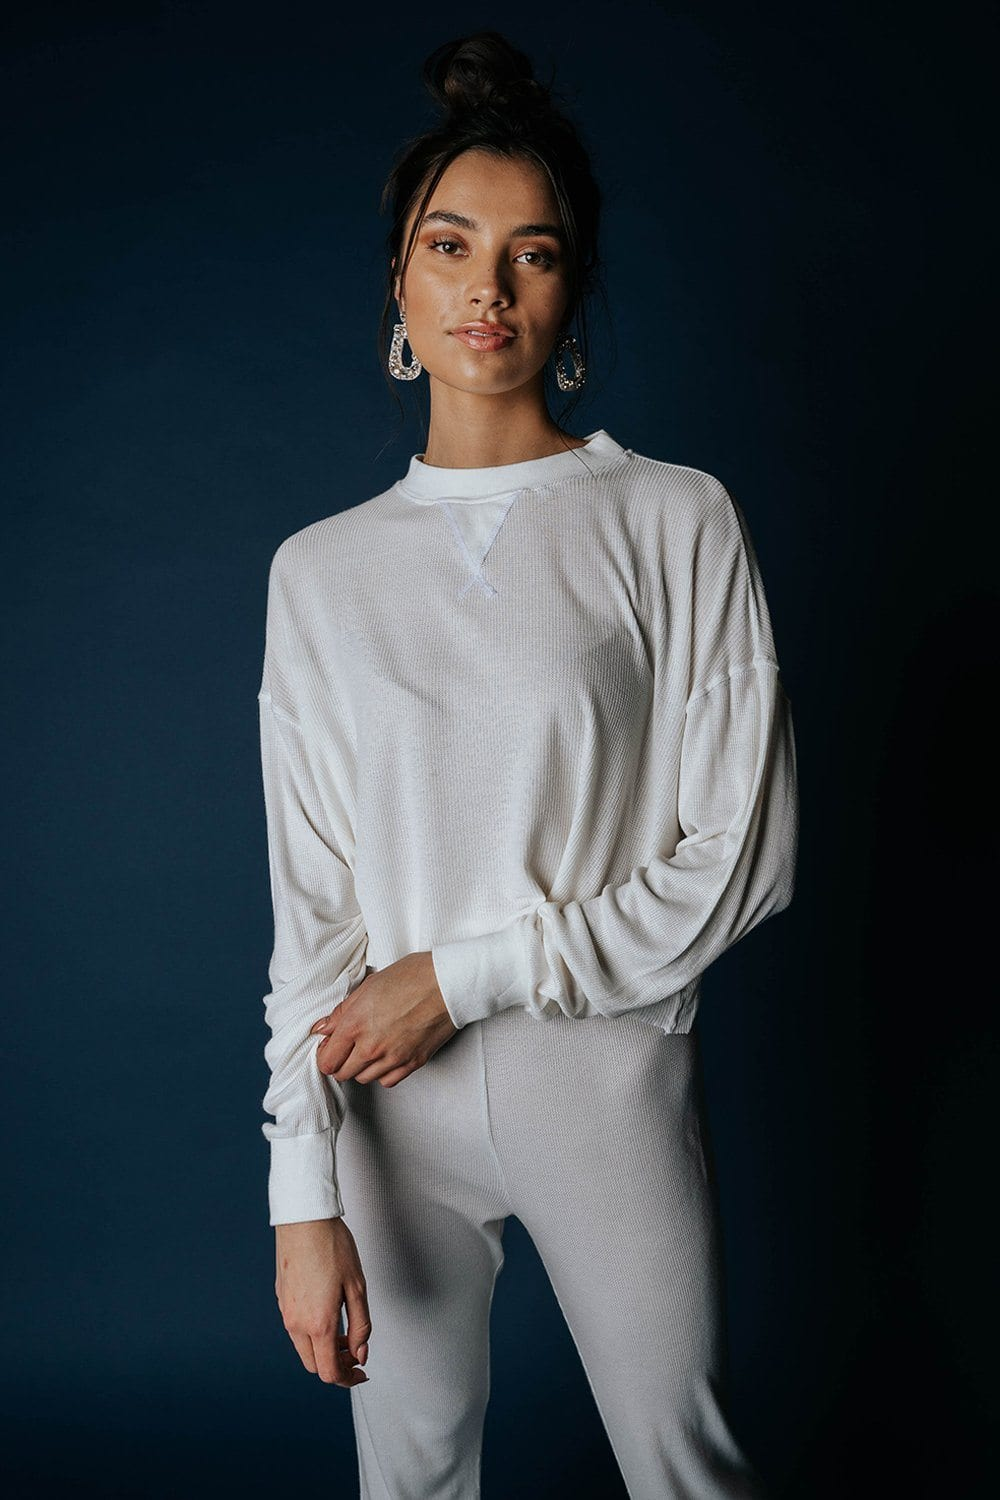 The Rickie Pullover in Ivory Top n/a Clad and Cloth